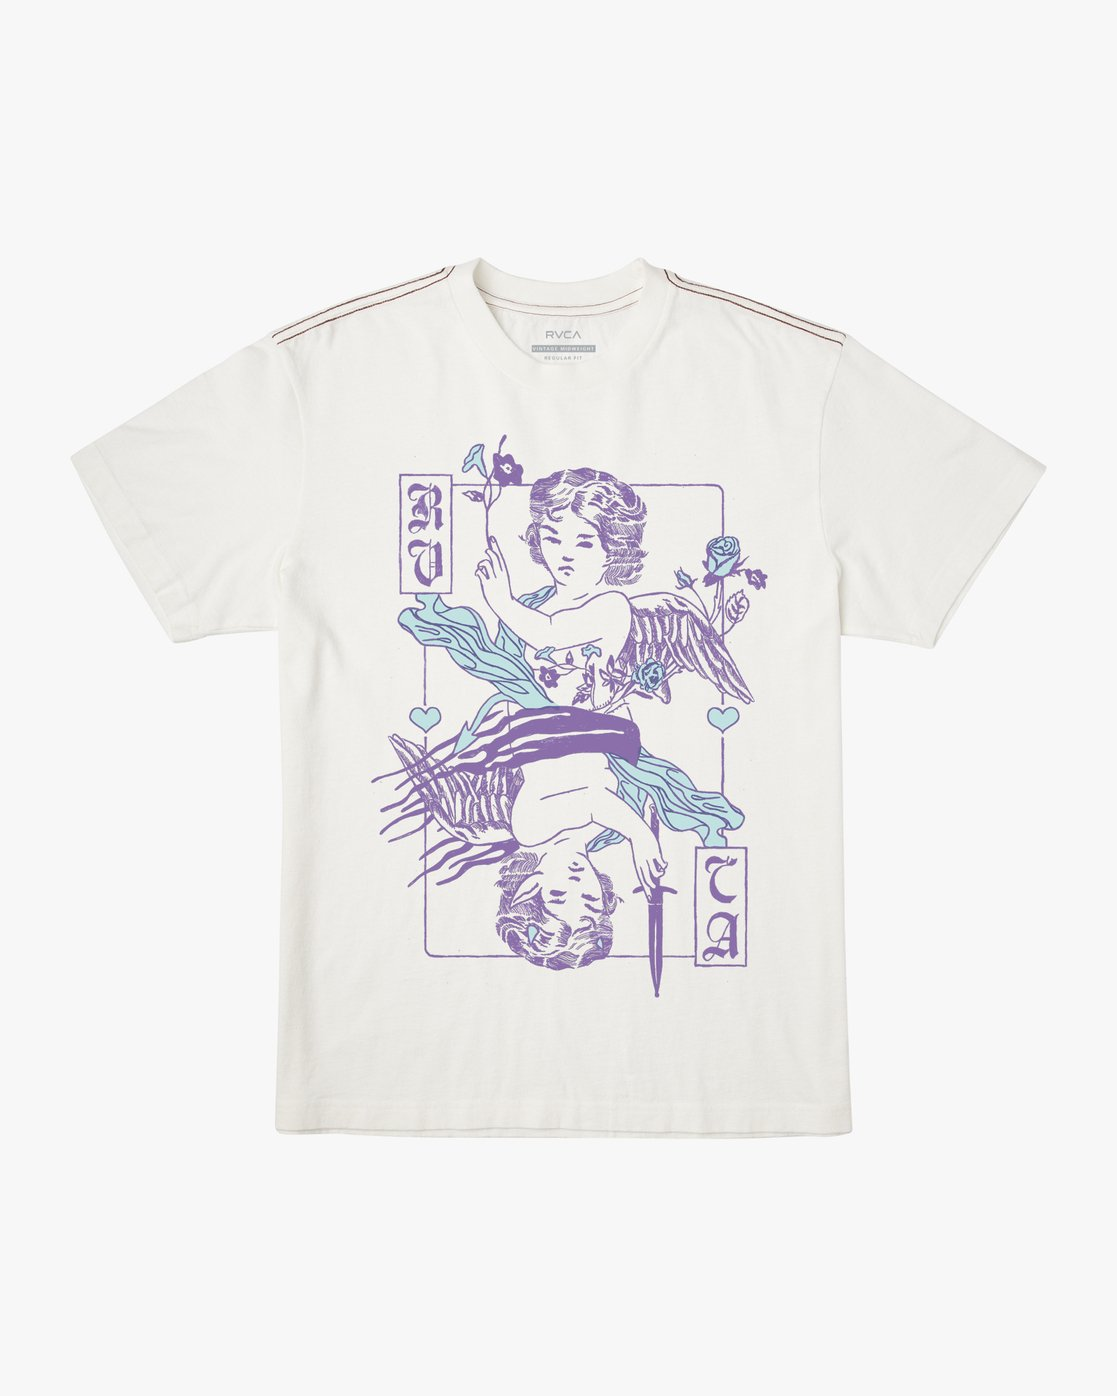 0 GOOD VS EVIL SHORT SLEEVE T-SHIRT White M4413RGO RVCA